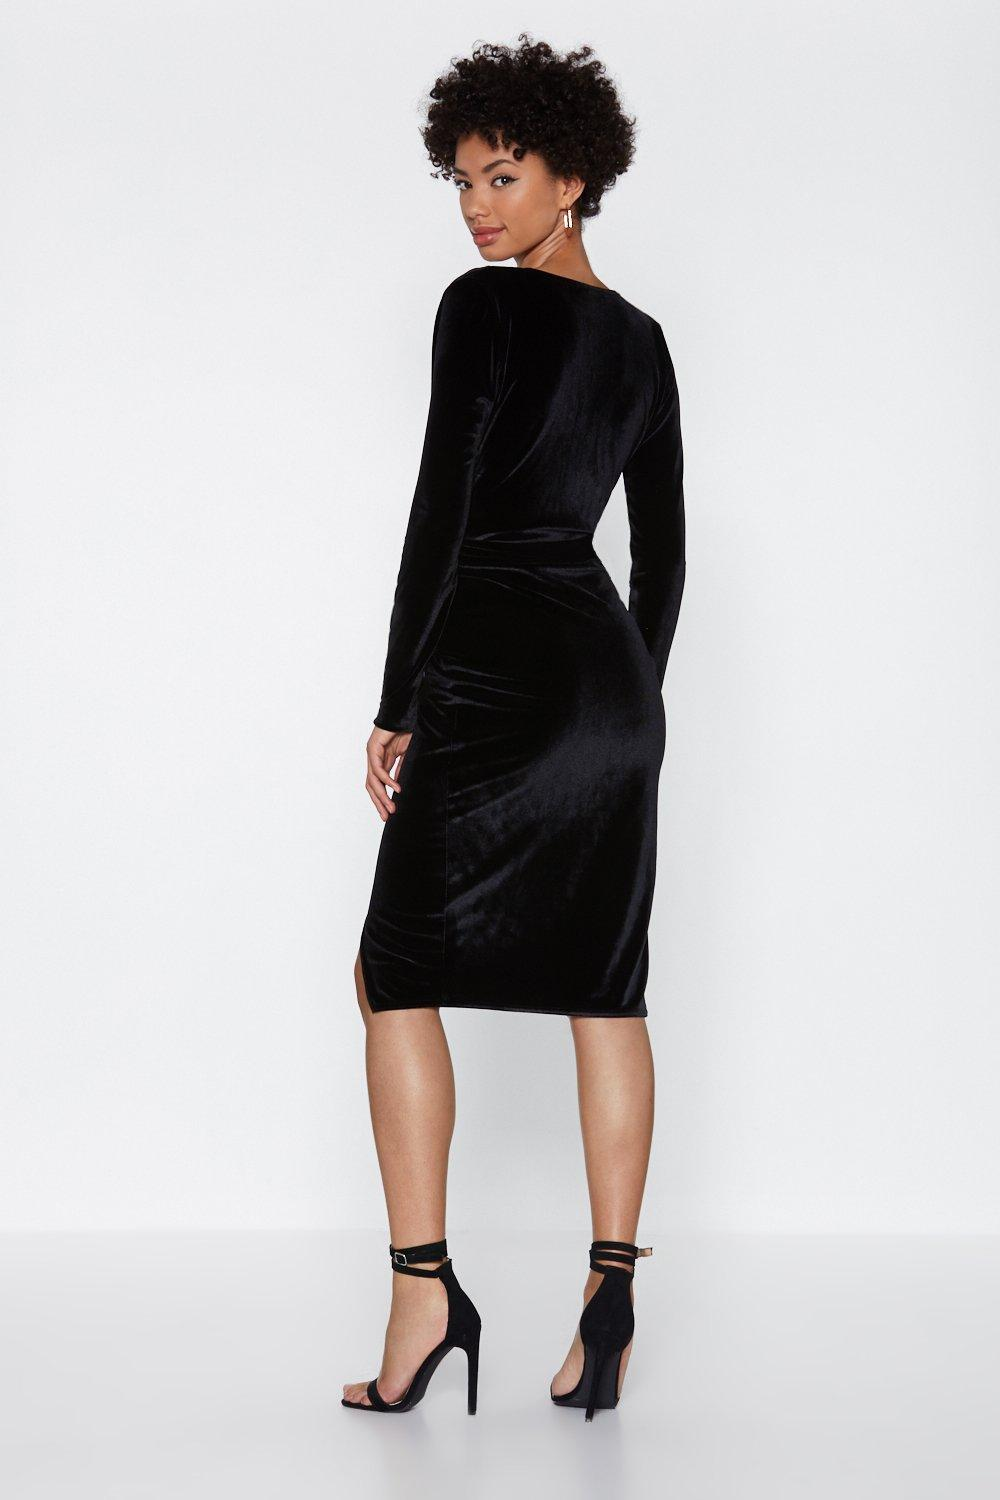 33bac61b4ca Womens Black It s a Wrap Velvet Dress. Hover to zoom